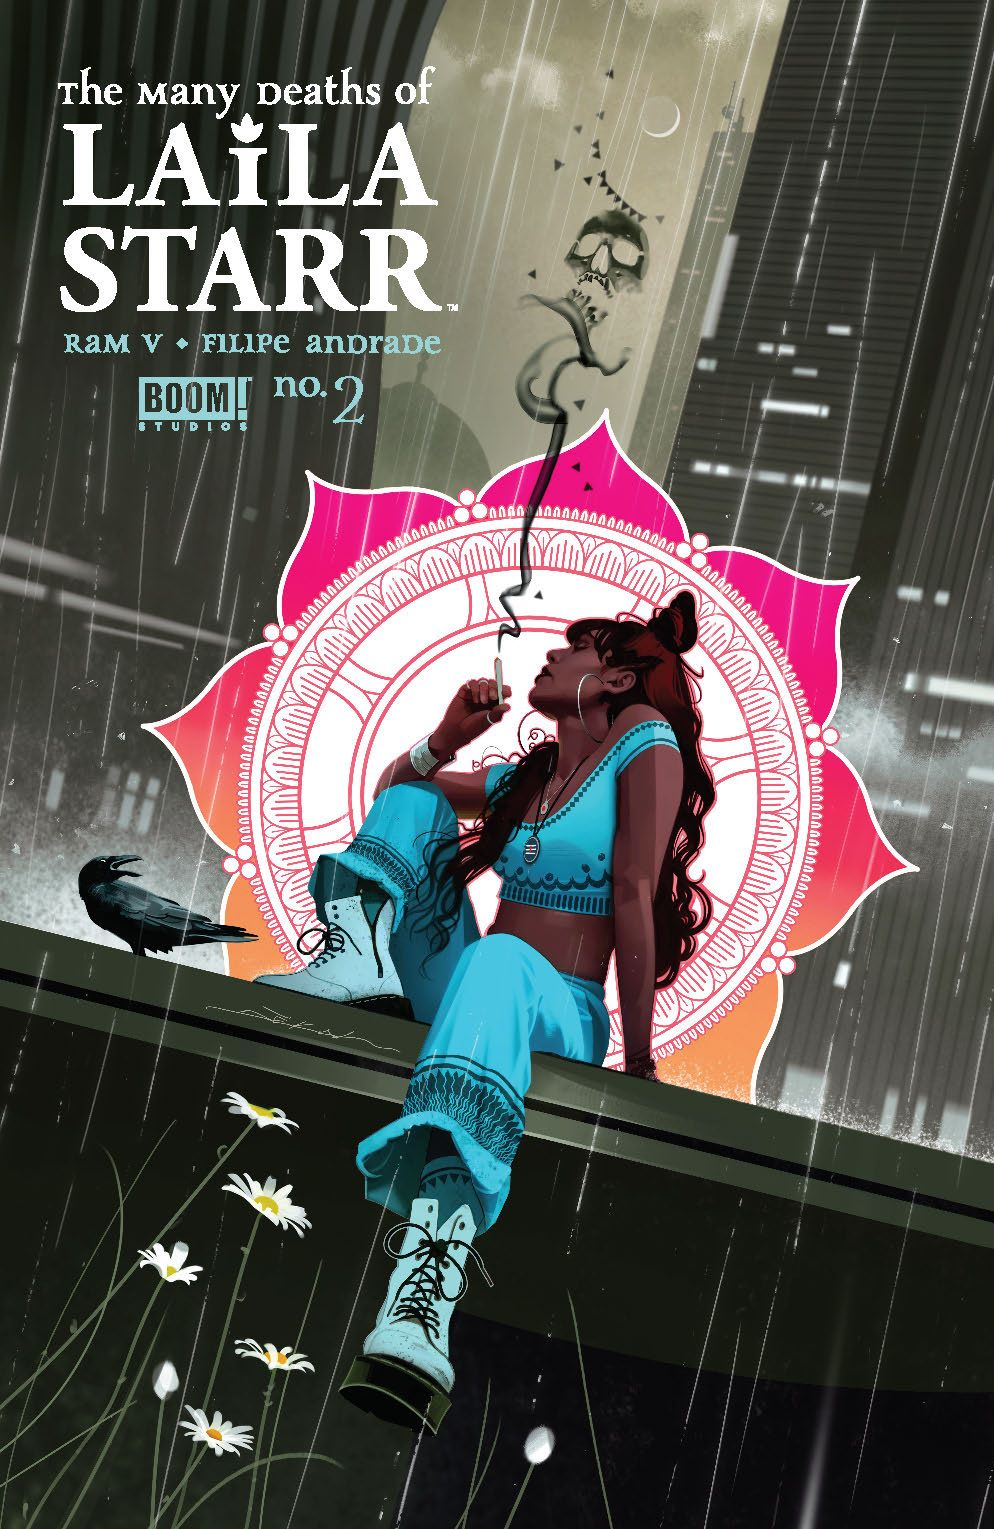 ManyDeathsLailaStarr_002_Cover_C_Variant ComicList Previews: THE MANY DEATHS OF LAILA STARR #2 (OF 5)